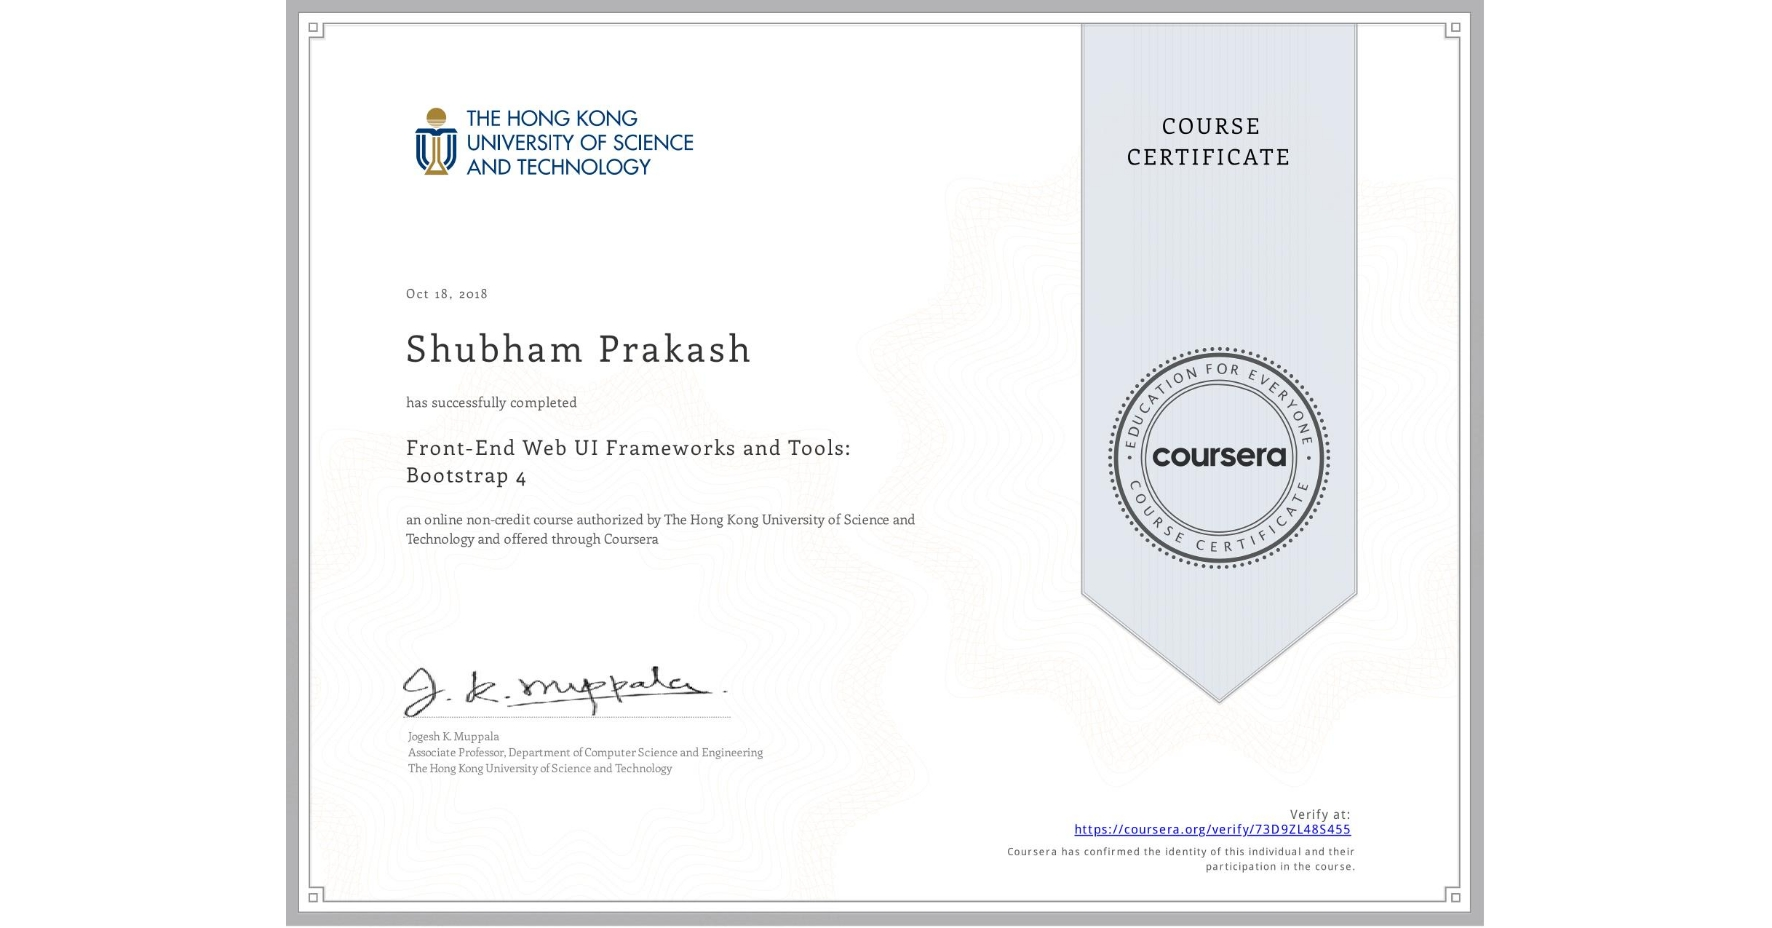 View certificate for Shubham Prakash, Front-End Web UI Frameworks and Tools: Bootstrap 4, an online non-credit course authorized by The Hong Kong University of Science and Technology and offered through Coursera